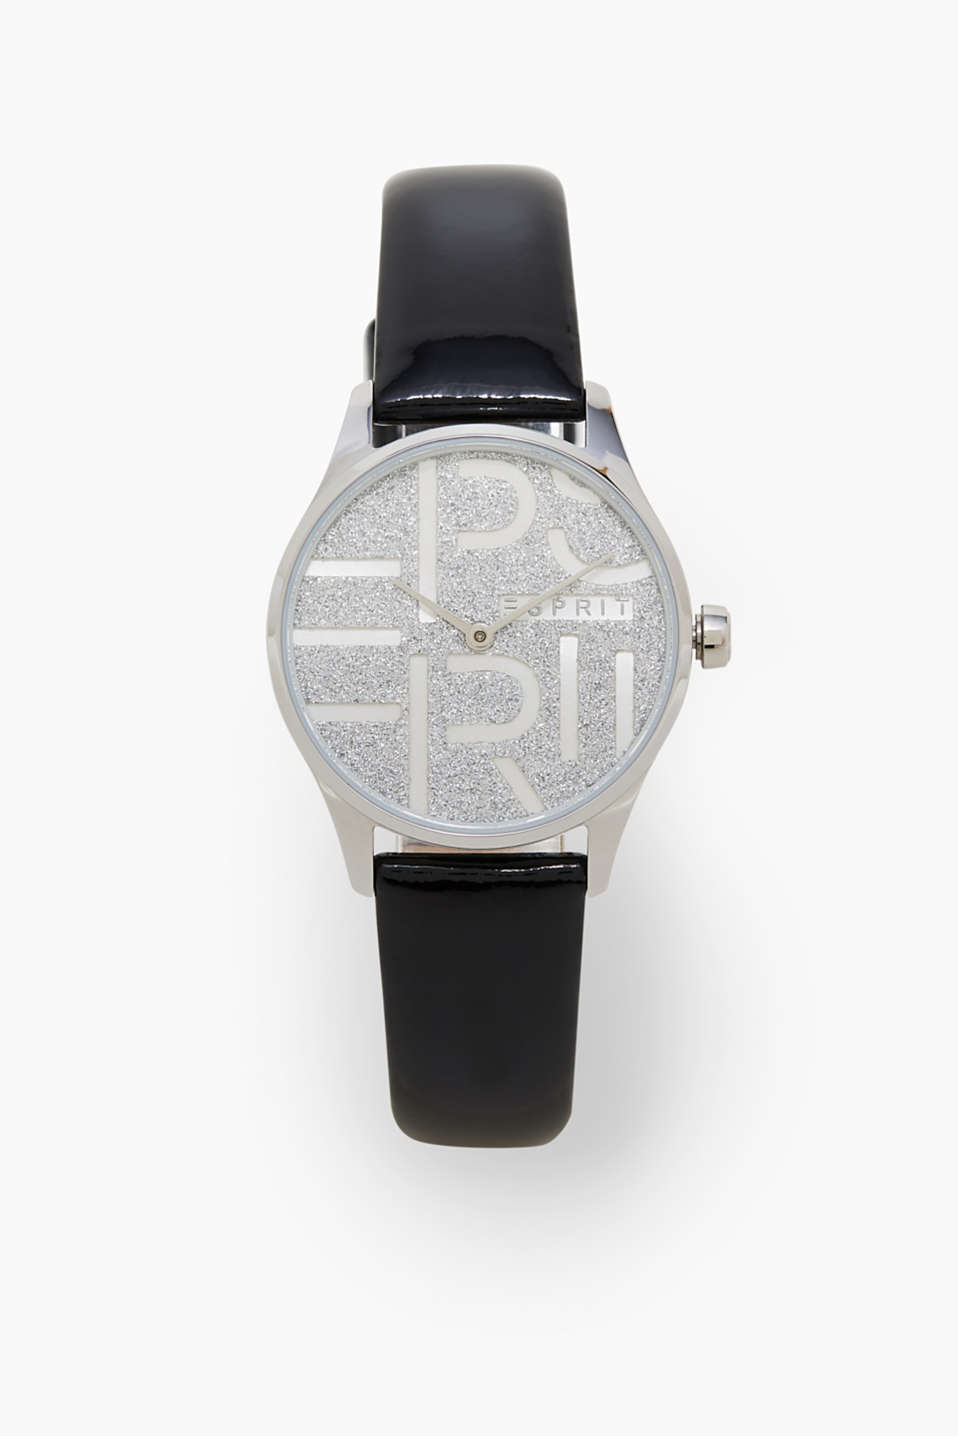 Esprit - Stainless steel watch with glittering dial